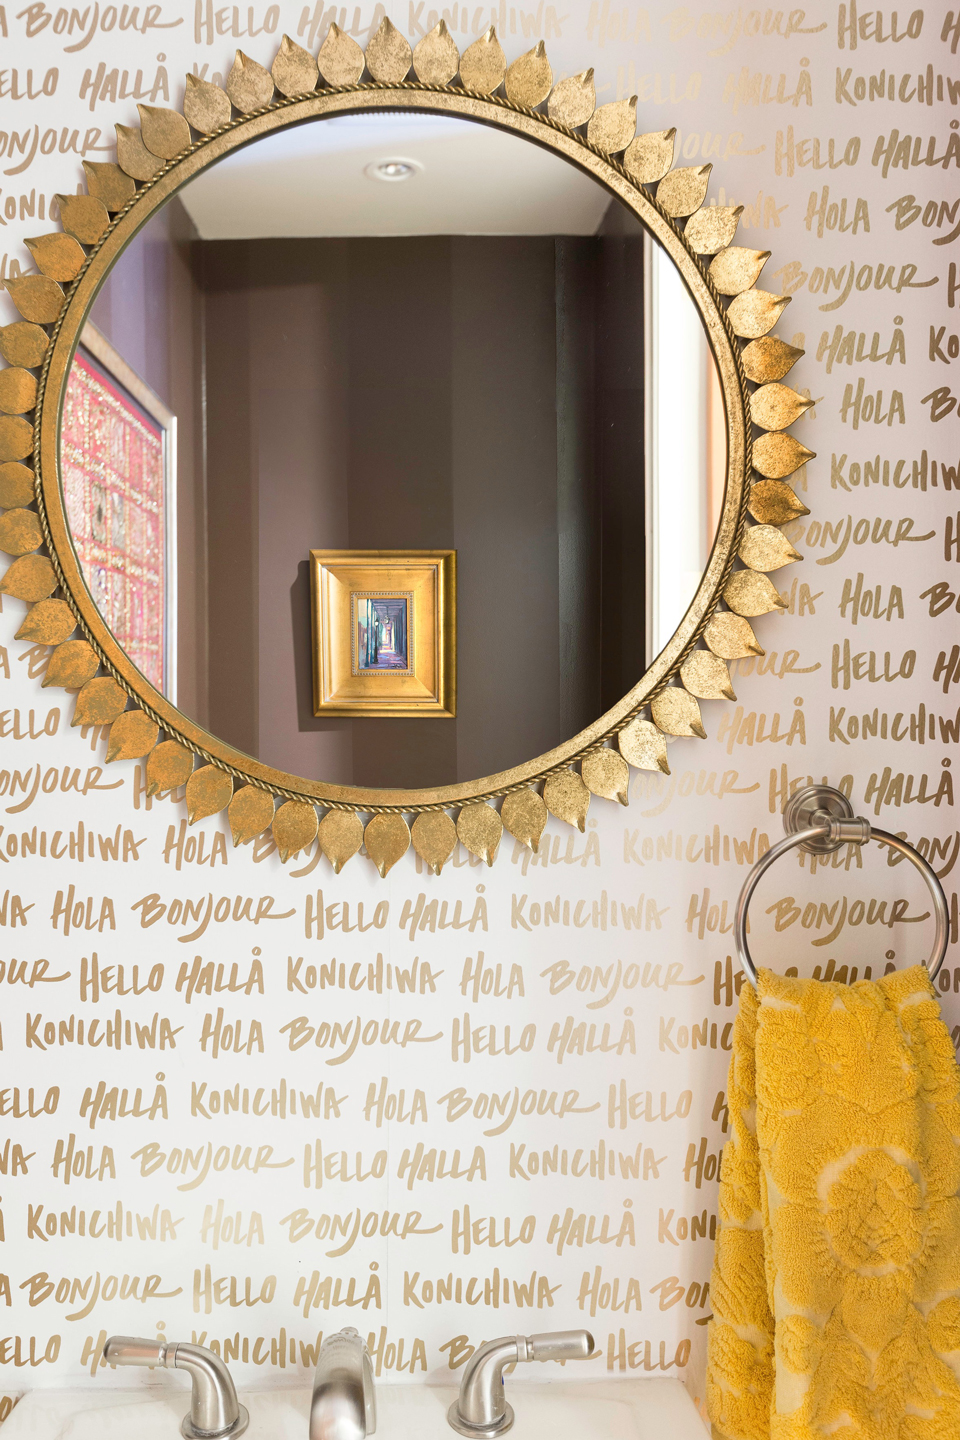 White wallpaper with gold lettering in a bathroom